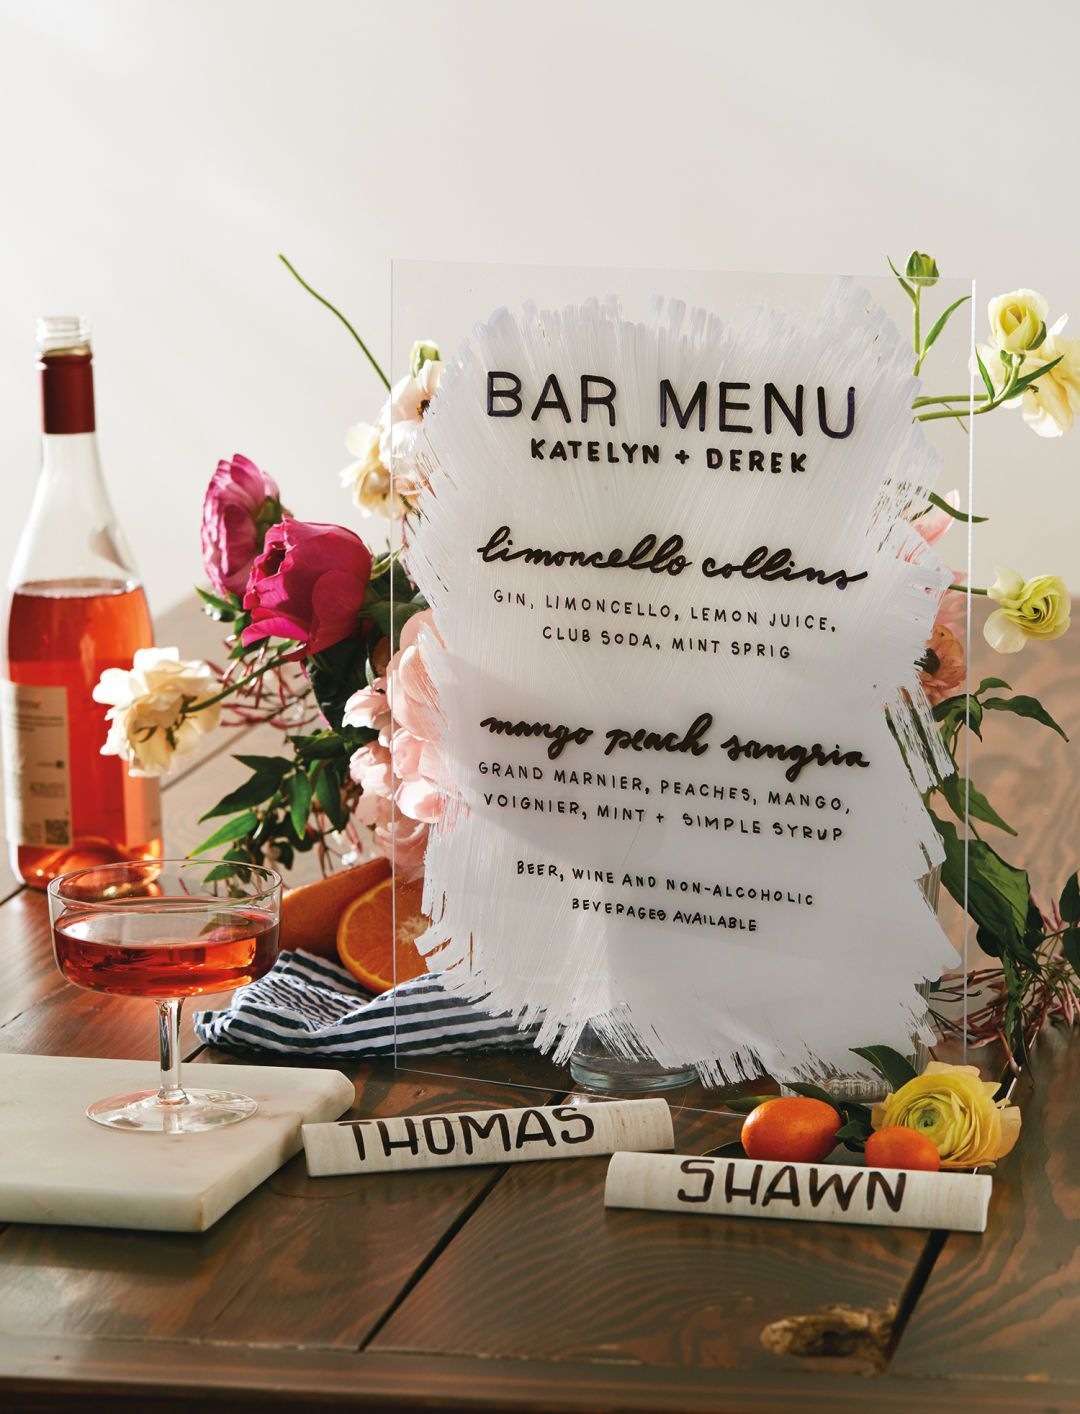 Skip the Buffet Line in Favor of a FamilyStyle Reception